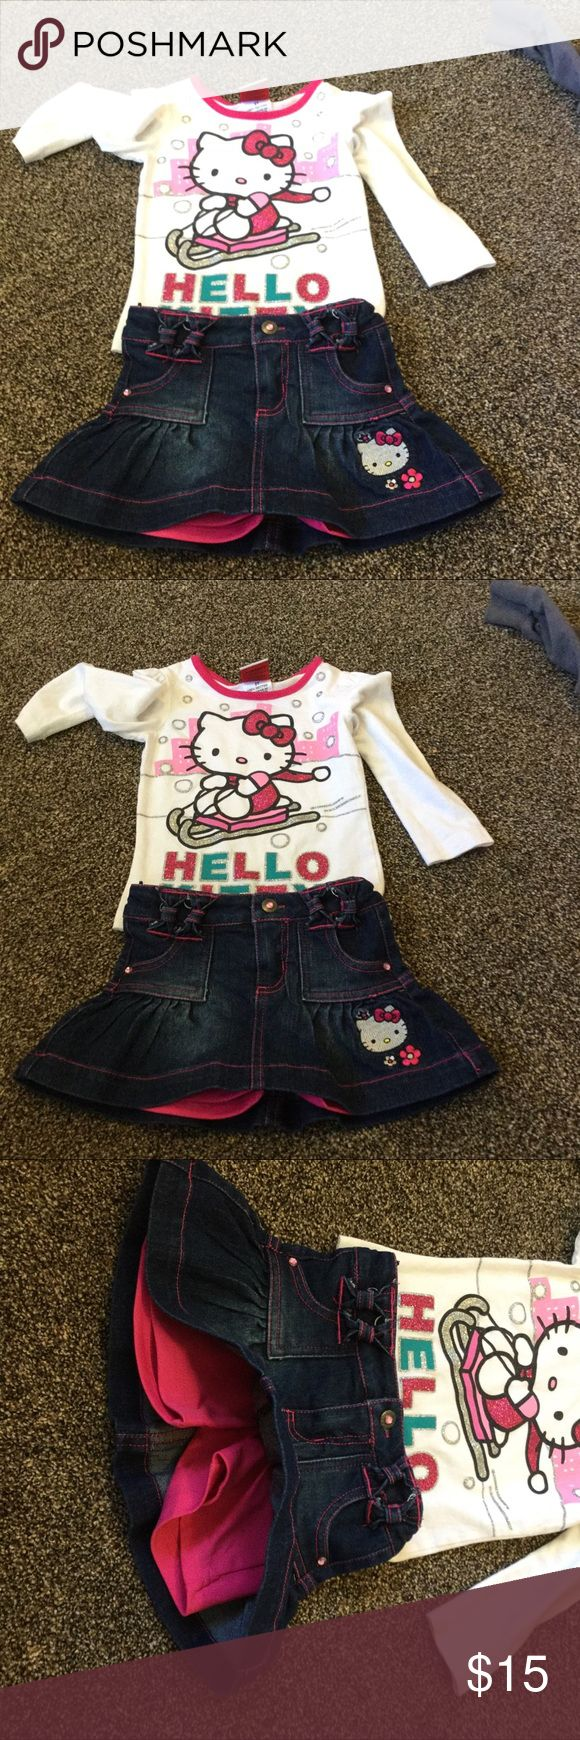 Hello kitty matching outfit size 2 T toddler Size to T toddler hello Kitty shirt and skirt that is like skorts that has little shorts with the skirt Hello Kitty Matching Sets